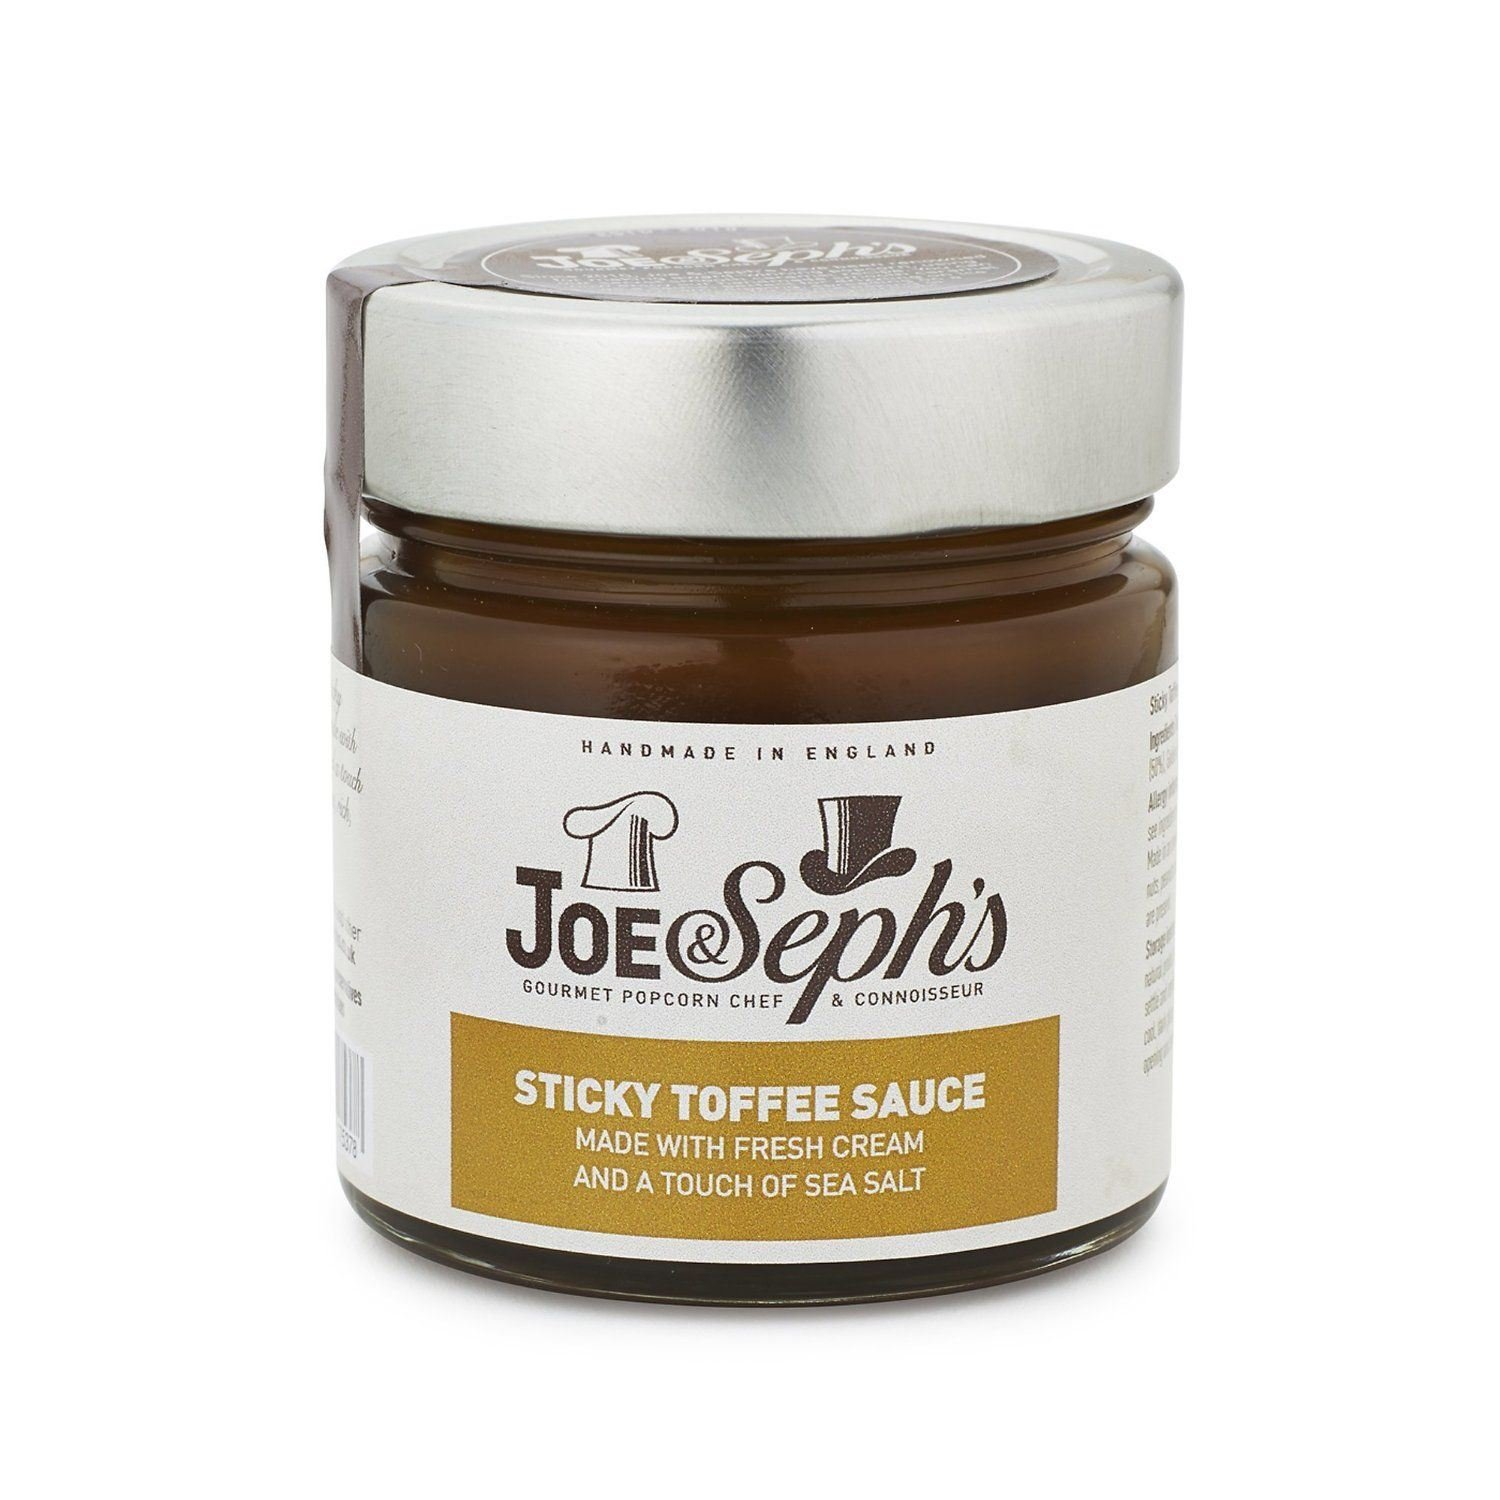 Joe&Sephs Sticky Toffee Sauce 230g (Pack of 3)